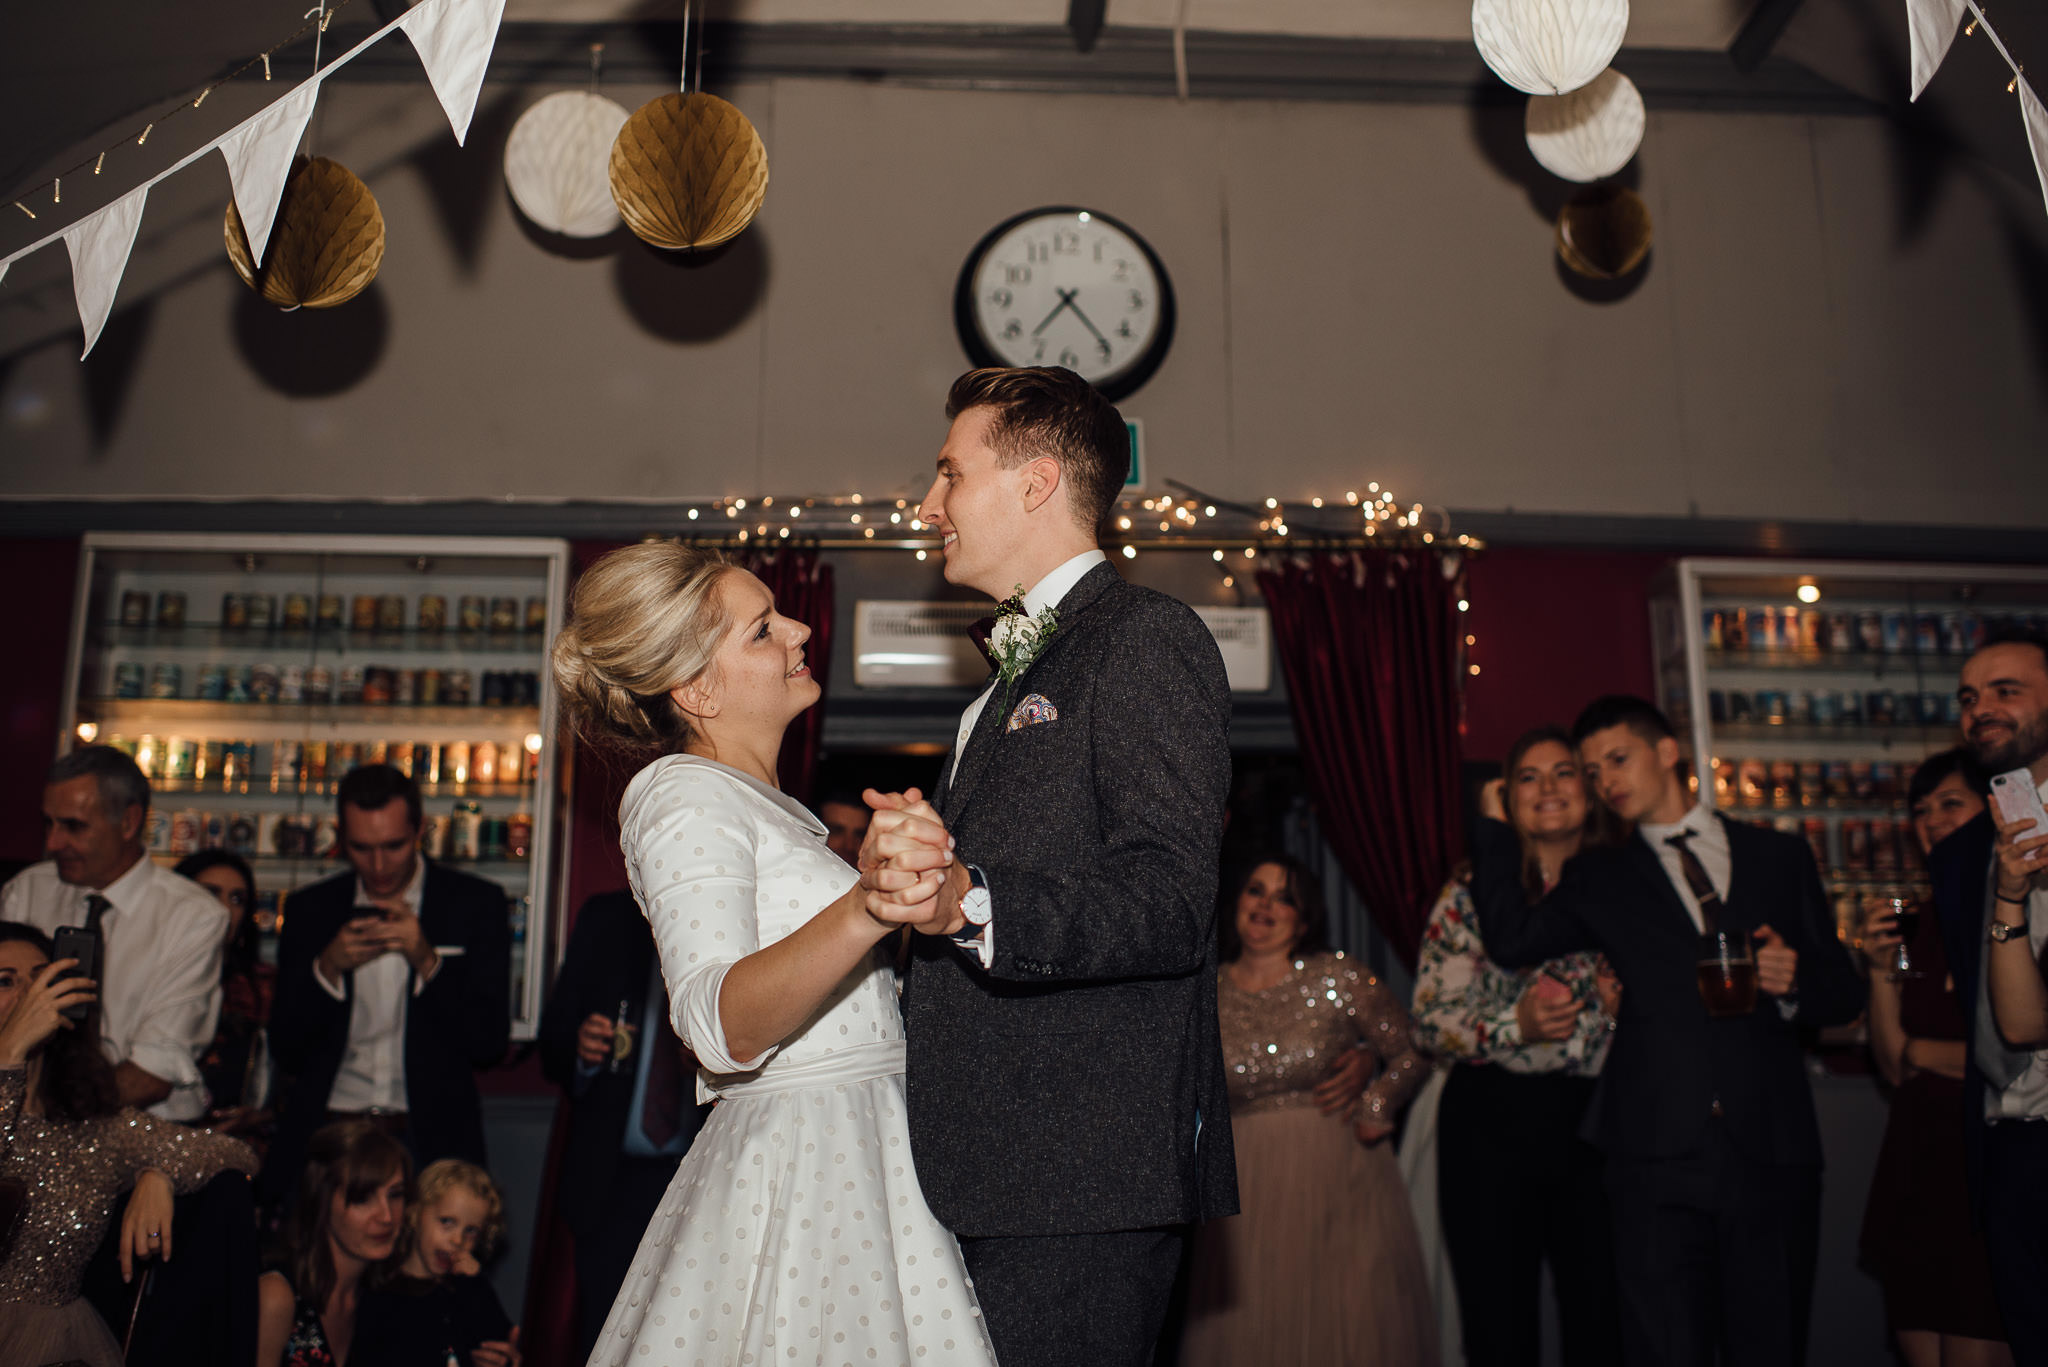 Bride and groom dancing in Londesborough pub in stoke newington town hall wedding by creative and alternative london wedding photographer the shannons photography